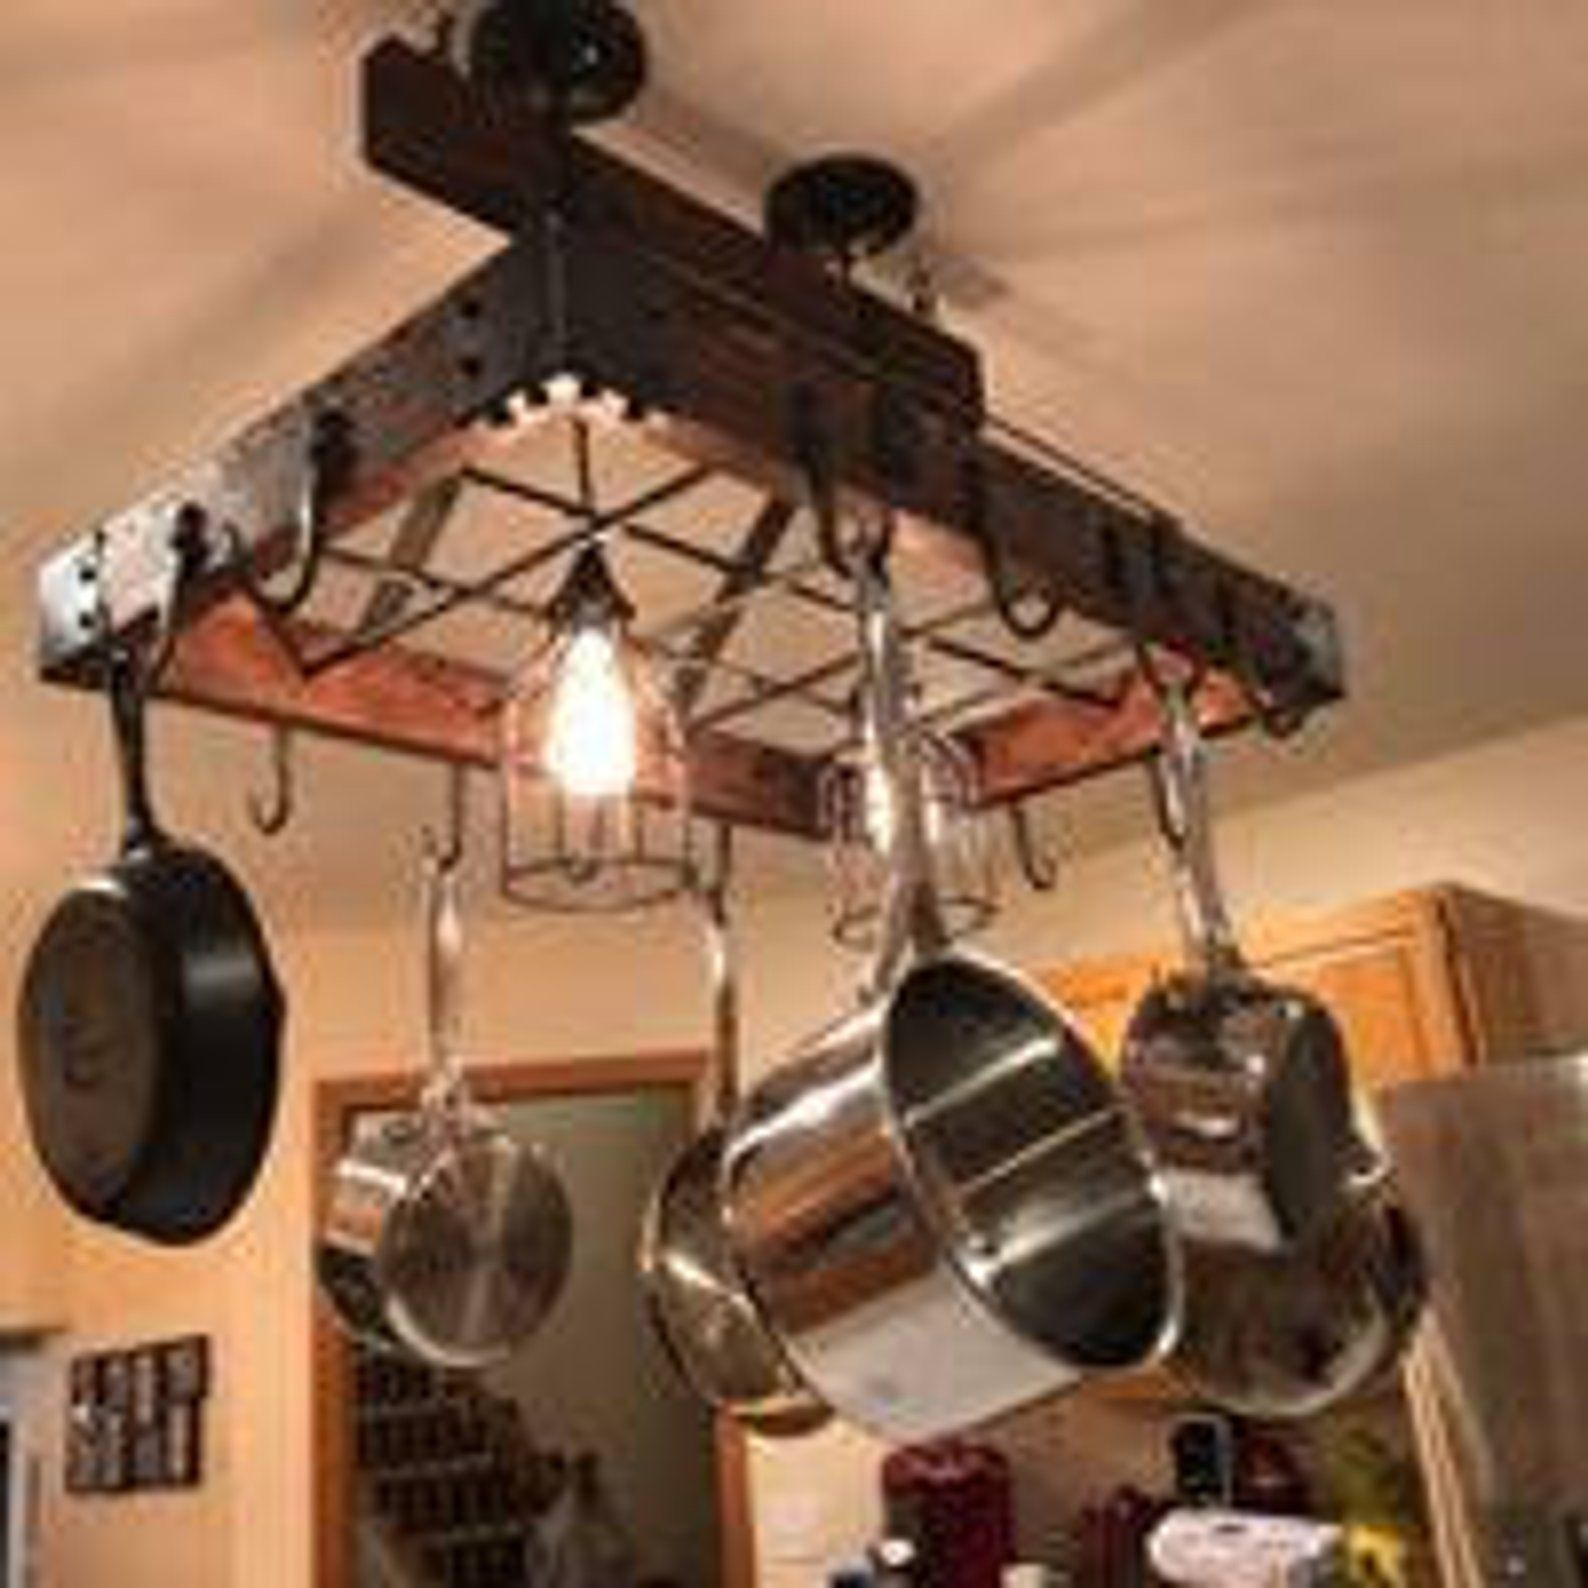 Forged Industrial Themed Hanging Pot Rack Etsy In 2021 Hanging Pot Rack Pot Rack Pot Rack Hanging